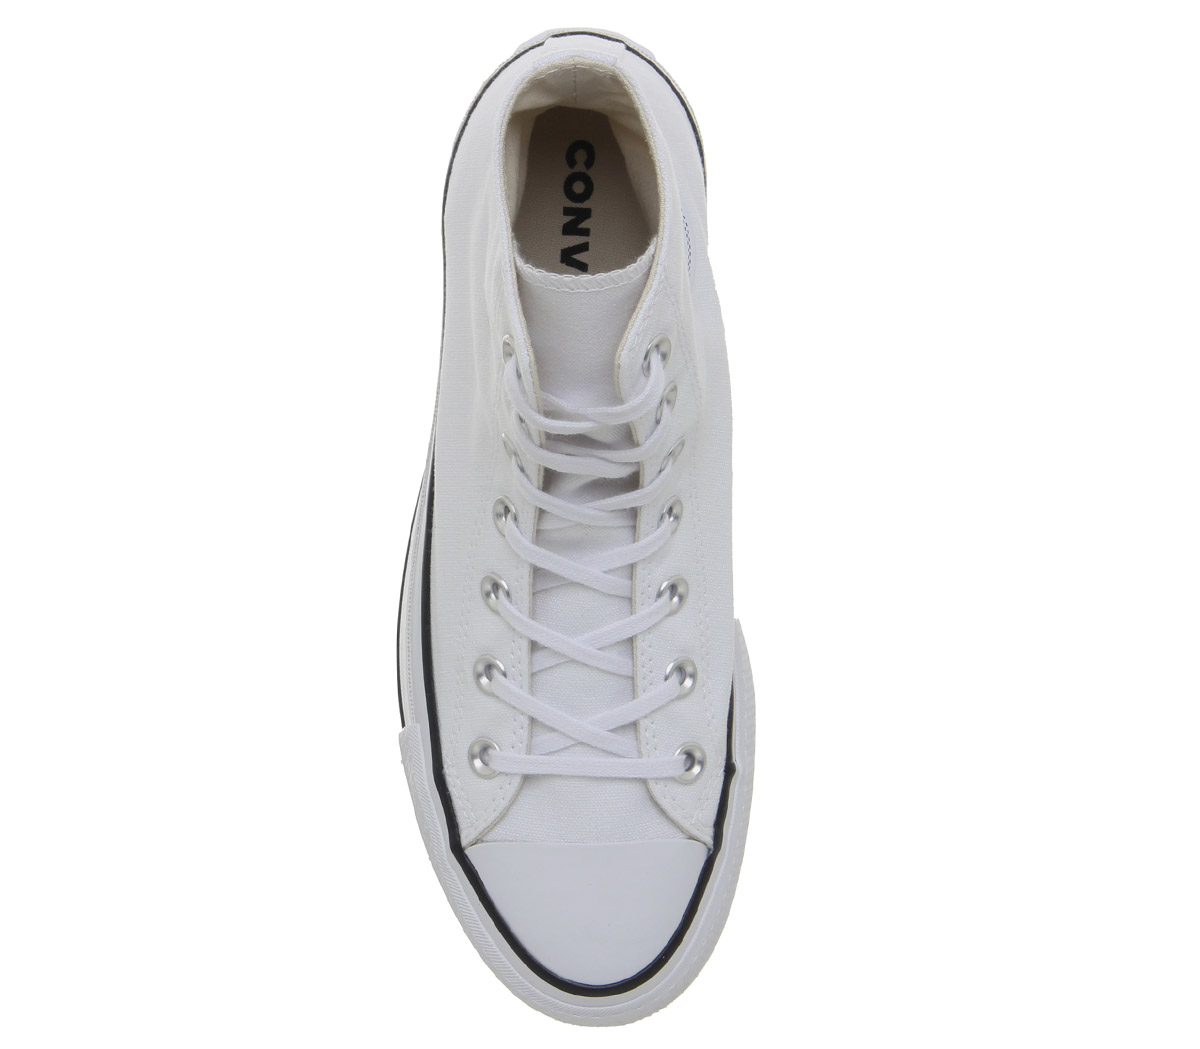 Womens Converse All Star Lift Trainers Hi Trainers Lift WHITE BLACK WHITE Trainers Shoes 4d1284